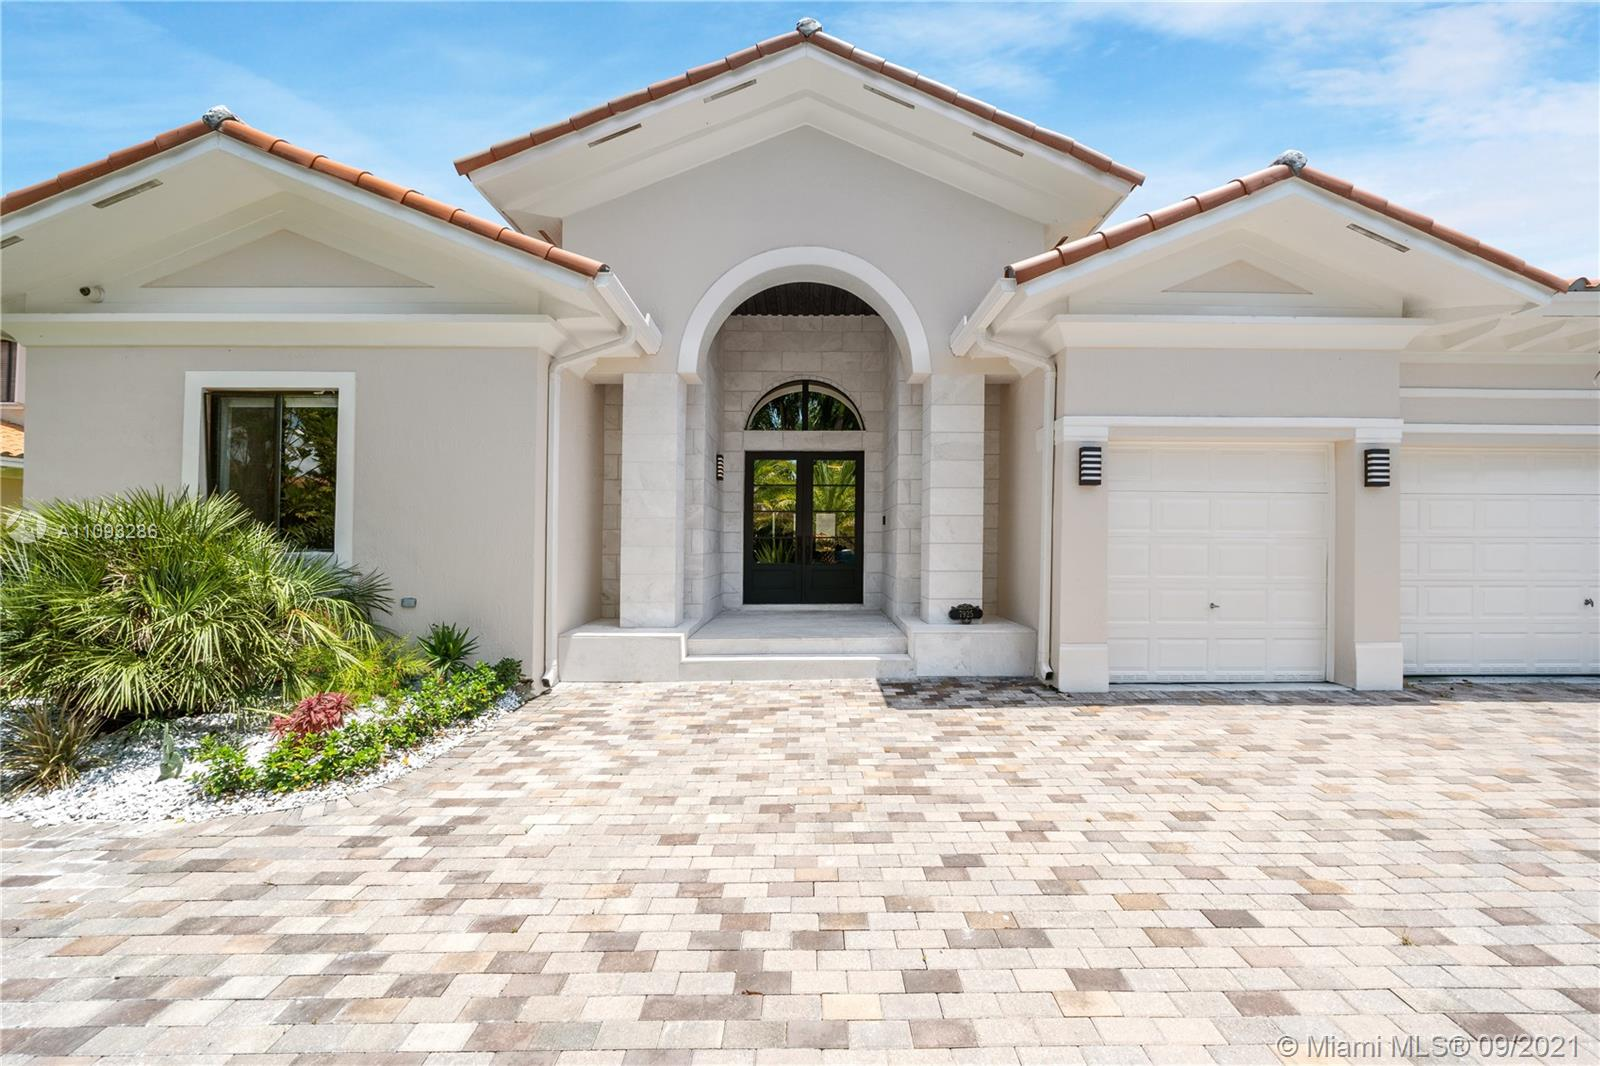 """OUTSTANDING Home in Cutler Cay. Fully updated high tech home with no expense spared on all renovations. Enjoy utilizing """"techy"""" home operations from your own phone anywhere in the world ! Raise and lower your blinds, turn lights on/off all with your own phone ! This impeccable unique home sits adjacent to fantastic lake views and cool evening breezes with Olympic sized pool, dine outside by the lake and marvel at the view. There simply is no other home in Cutler Cay that compares !! Please use show assist or call agent for quick showings, tenant occupied until August 15th 2021. This Great home is also FOR SALE"""